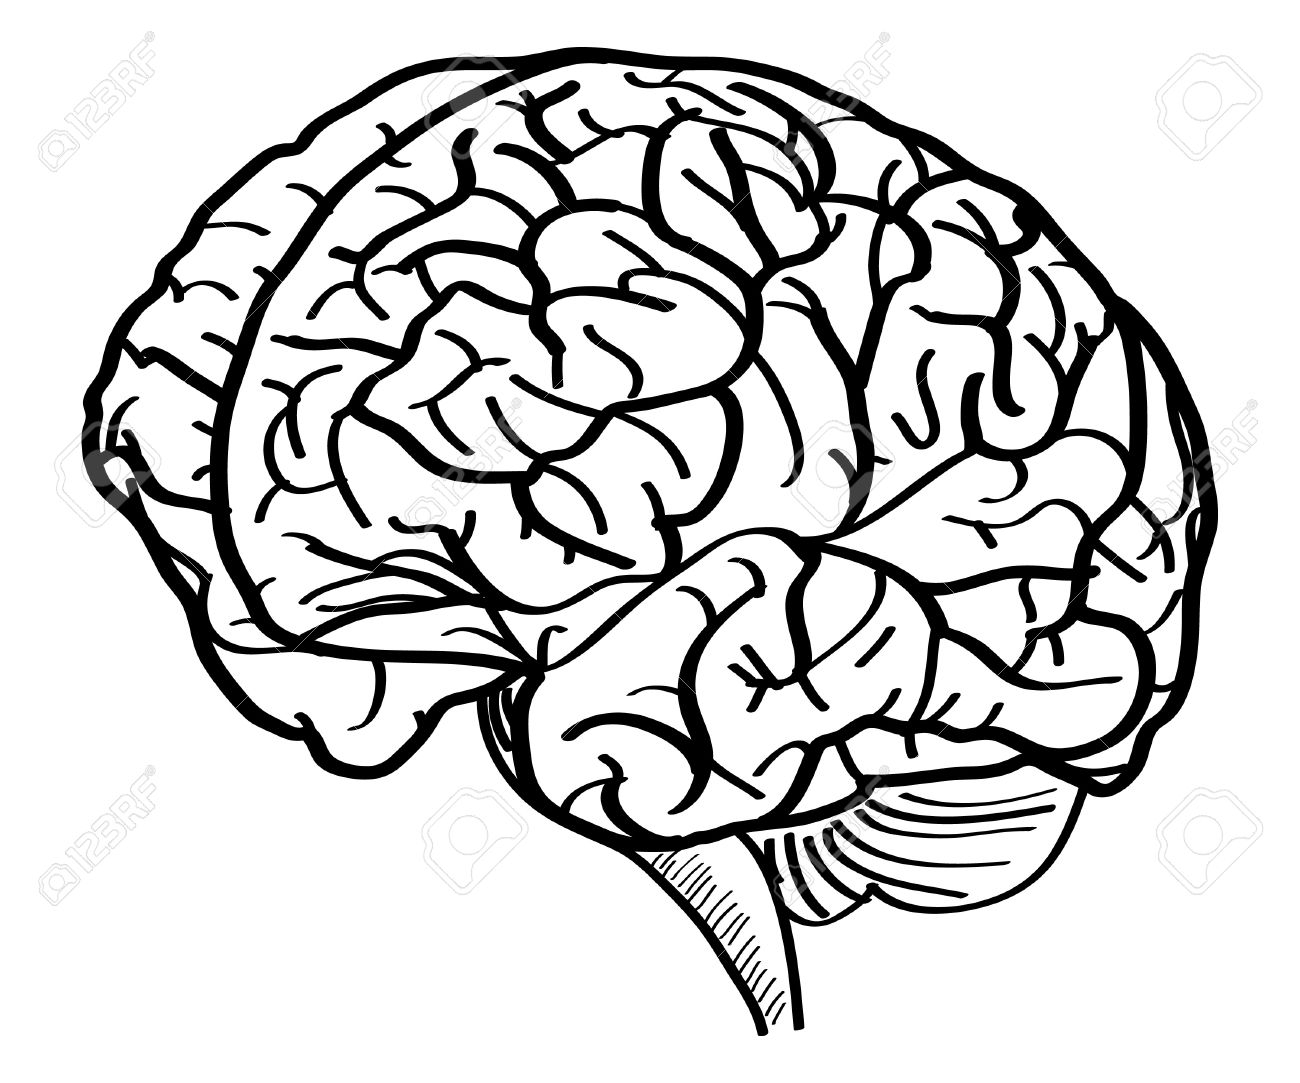 1300x1083 Brains Clipart Black And White